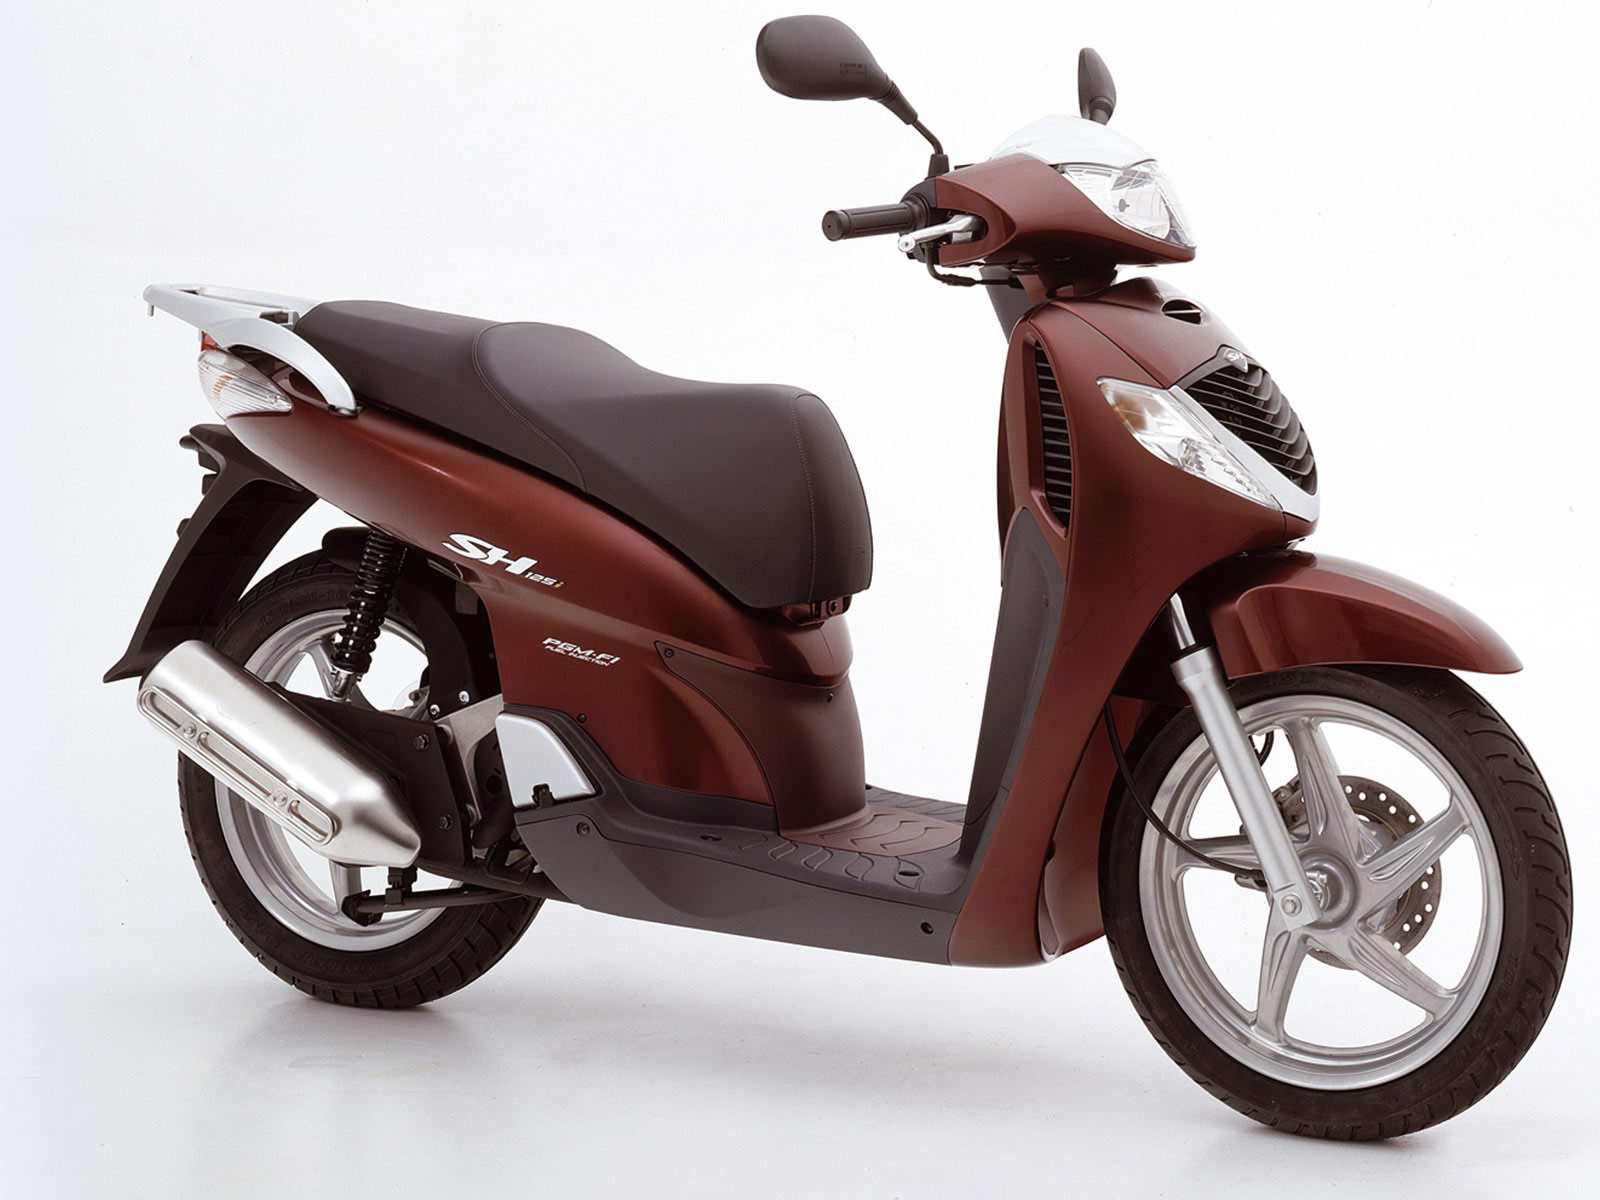 2005 honda sh 125i scooter accident lawyers info pictures. Black Bedroom Furniture Sets. Home Design Ideas